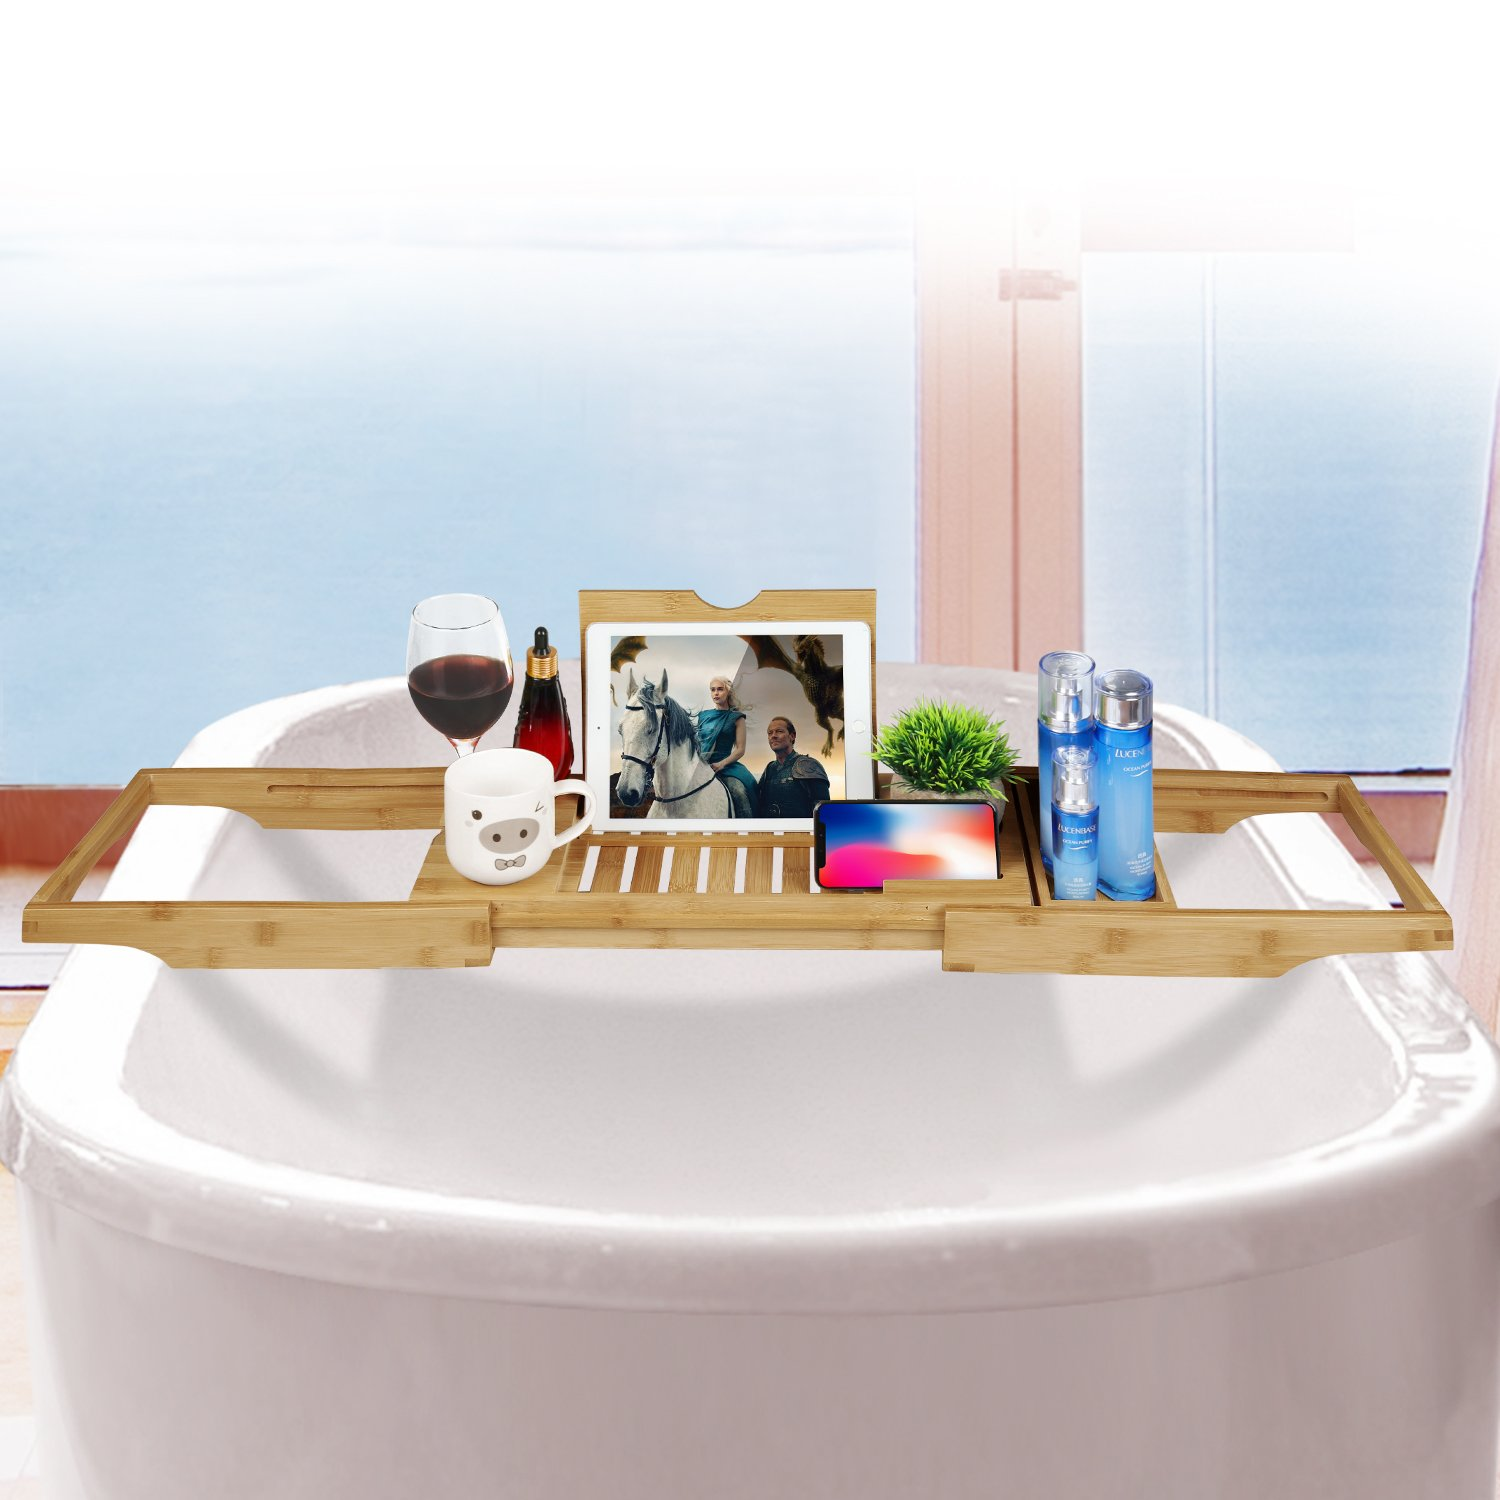 HappiHause Bathtub Caddy Rack & Laptop Bed Desk 2 in 1 Transforms ...